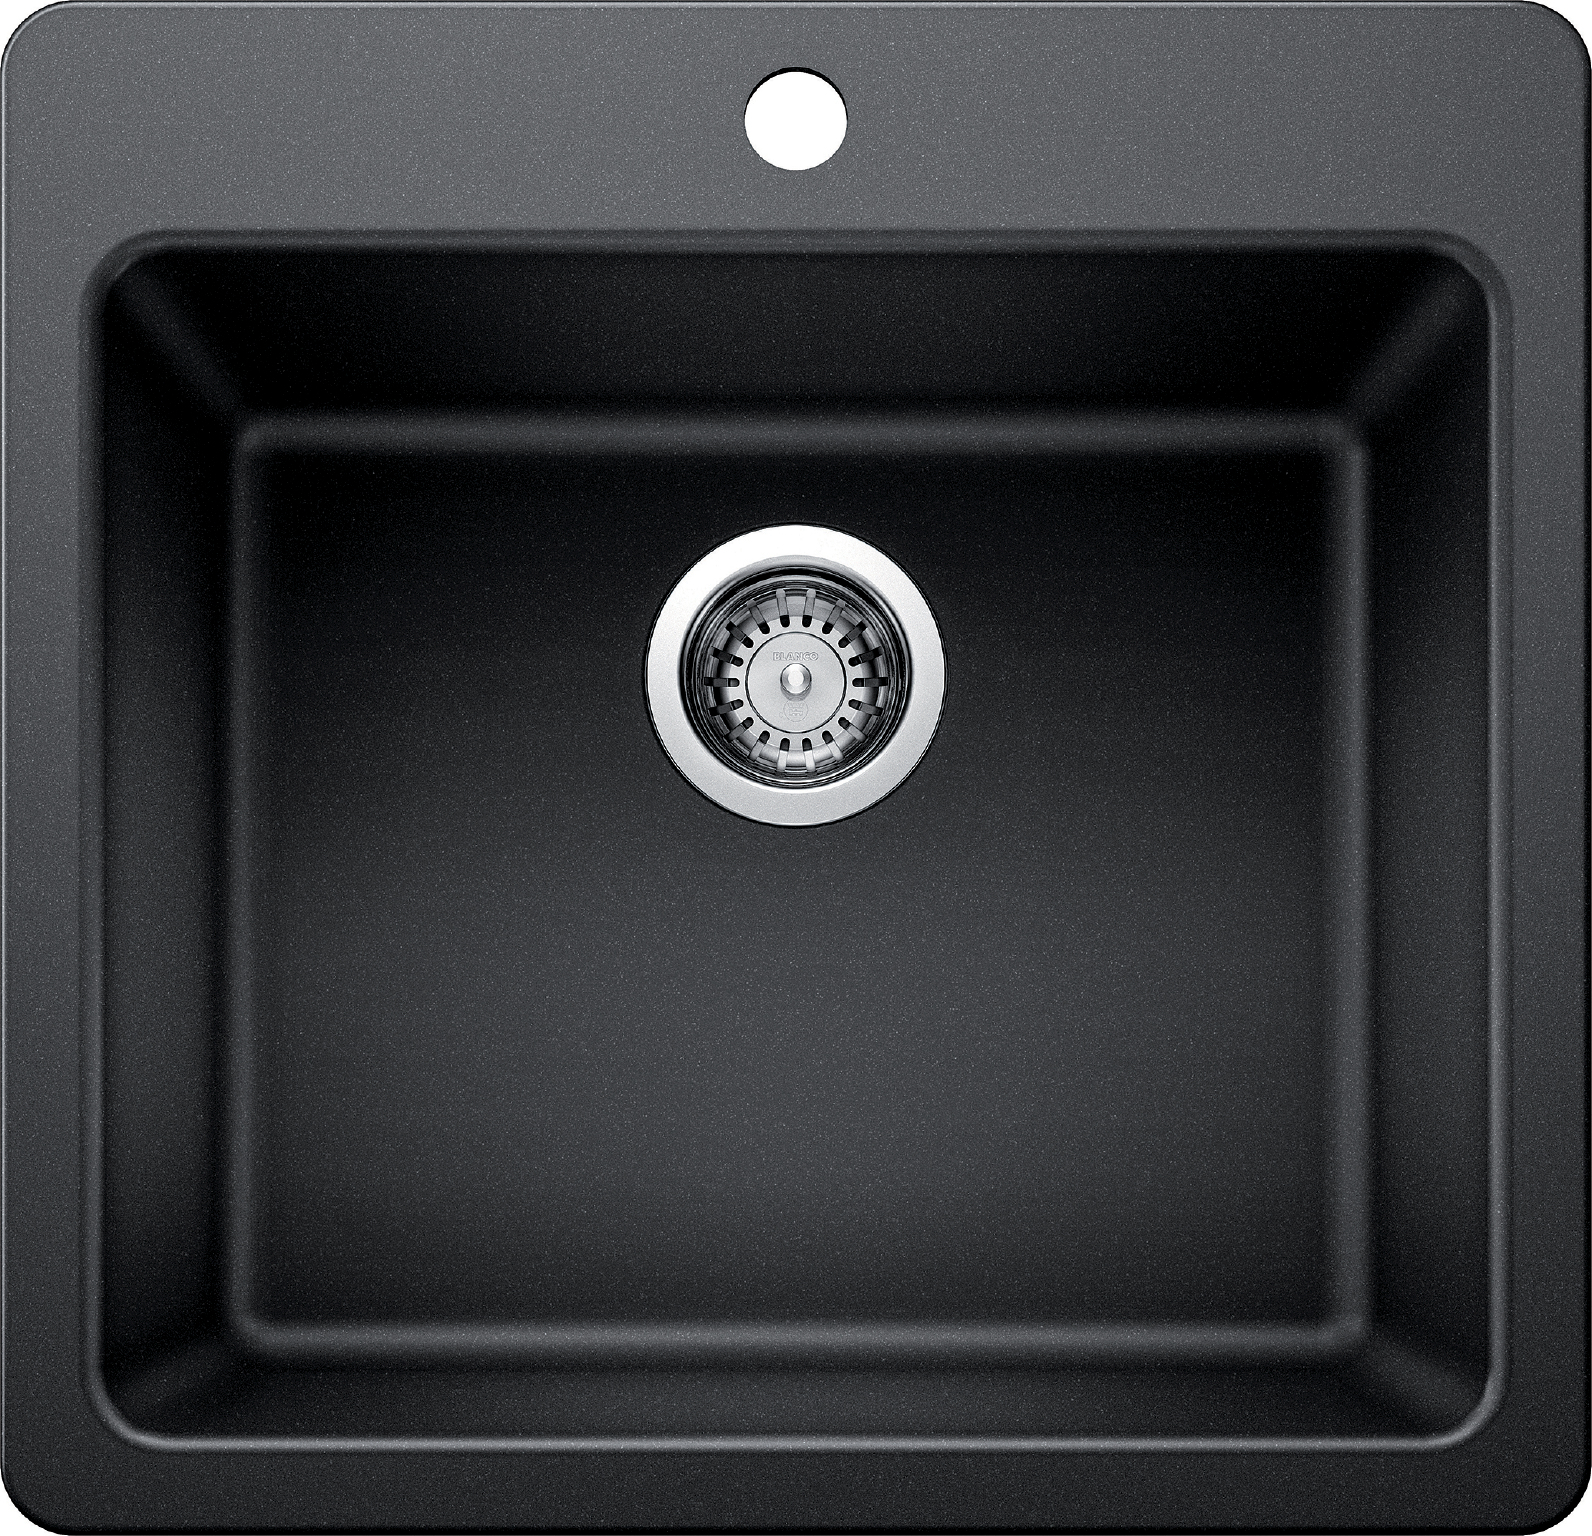 Luxart Collection - LUXART Standard Single Bowl Drop-in Sink